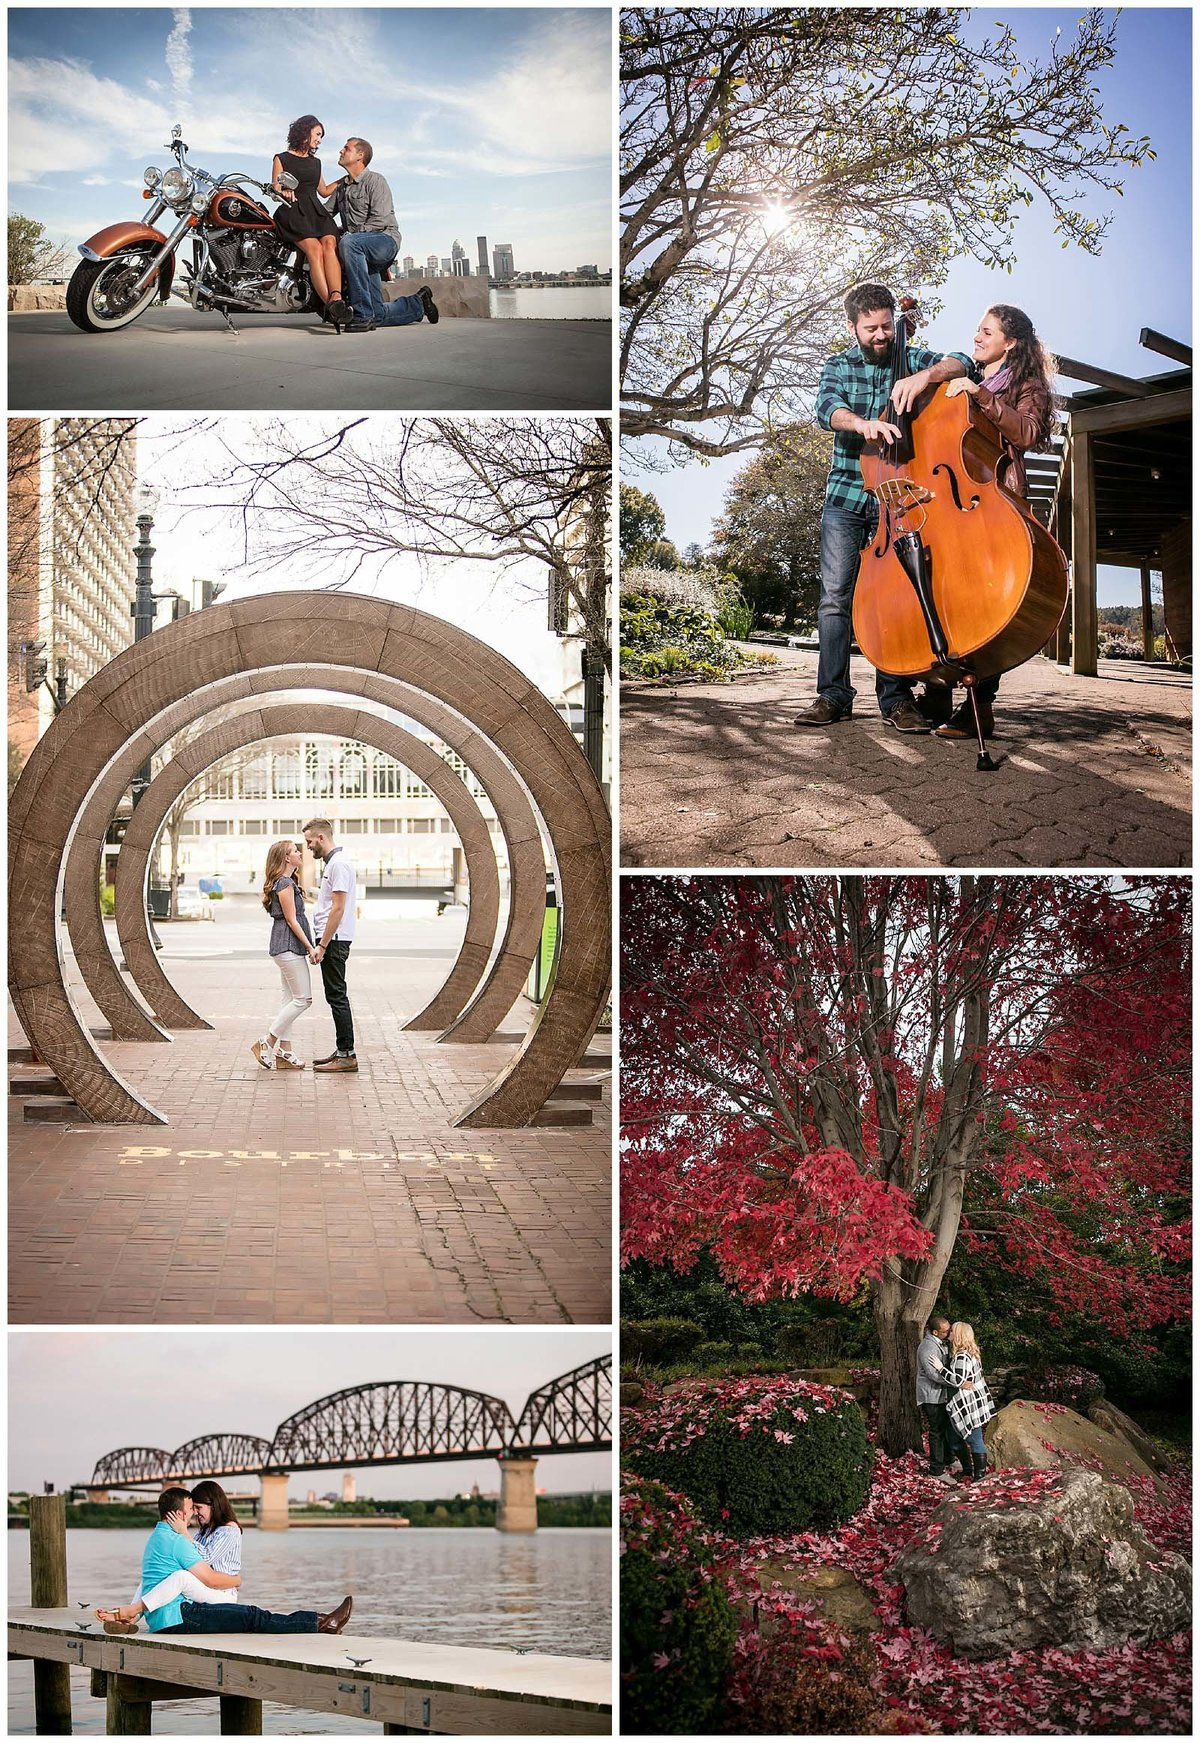 Couples include hobbies during their engagement session.  Motorcycles, Music, Romance, and hometowns.